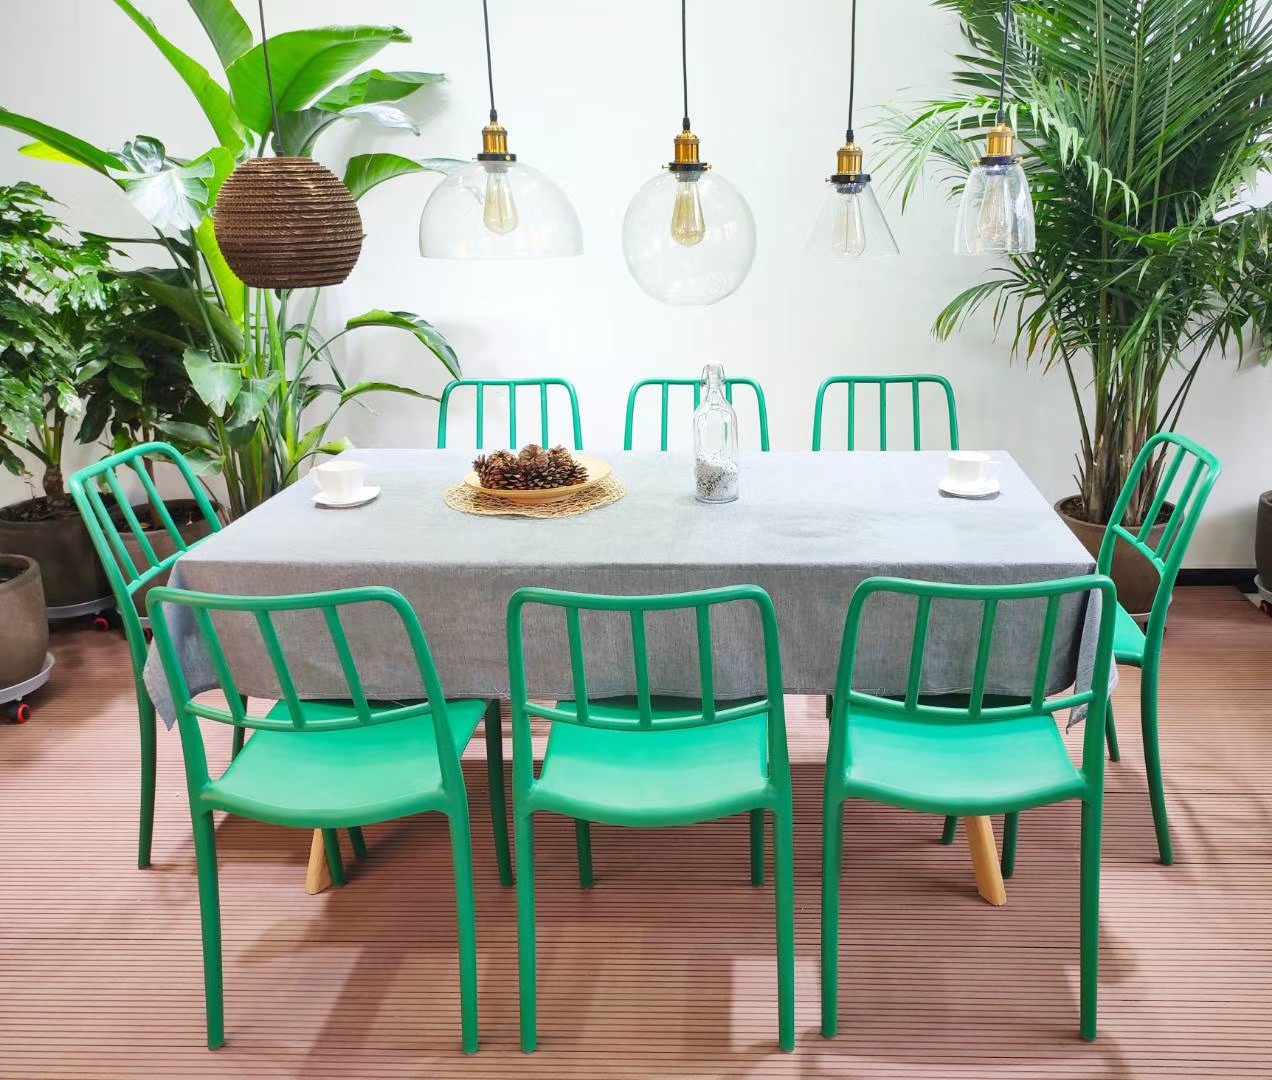 plastic-chair-Italy-green